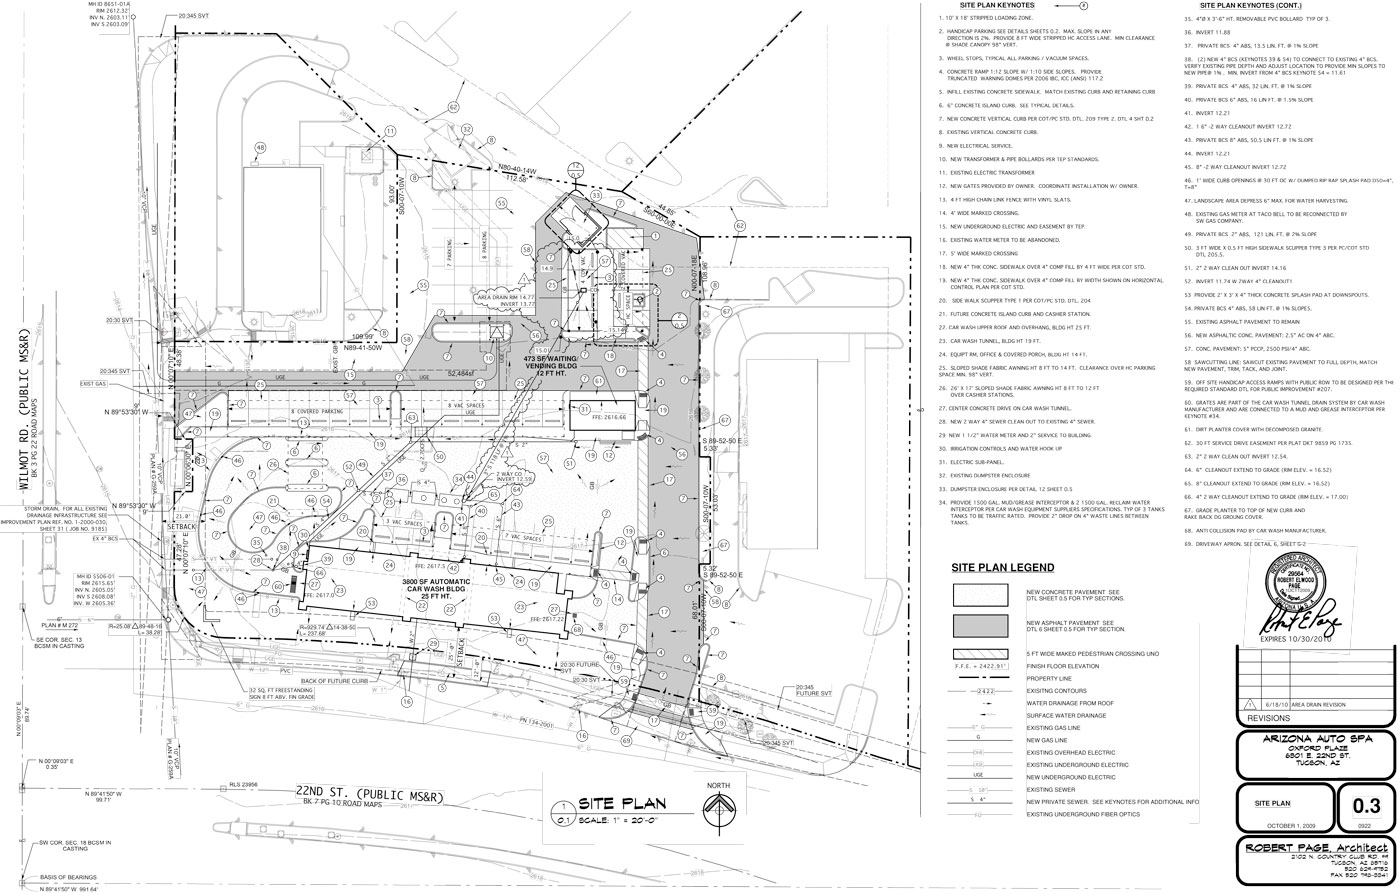 Site Plans Robert Page Architect – Car Wash Site Plans